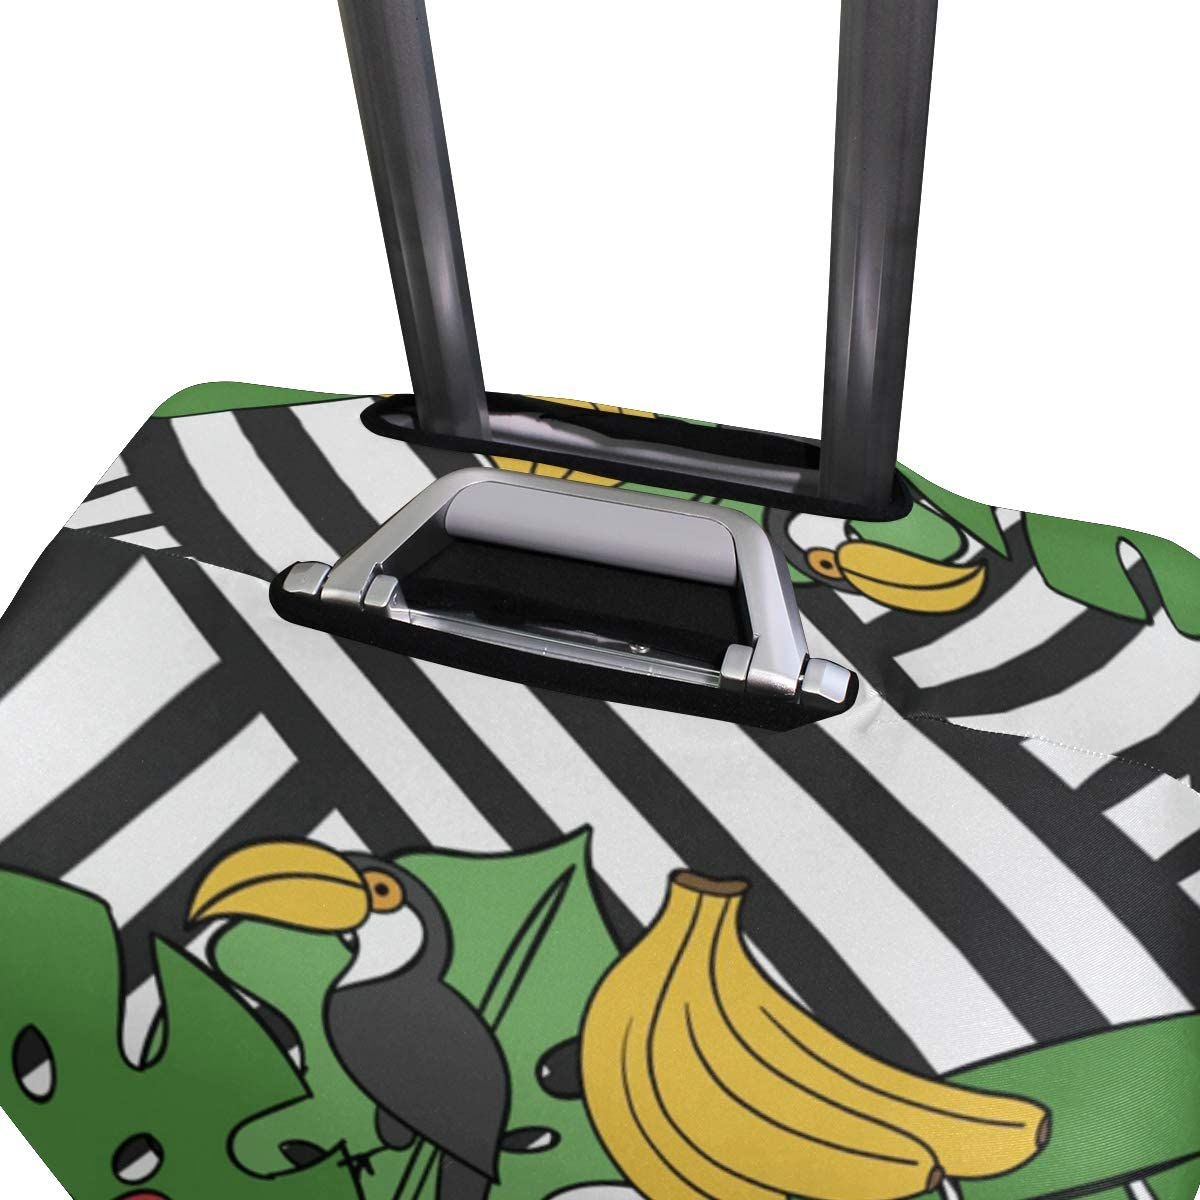 FOLPPLY Aloha Toucan Birds Banana Stripes Luggage Cover Baggage Suitcase Travel Protector Fit for 18-32 Inch